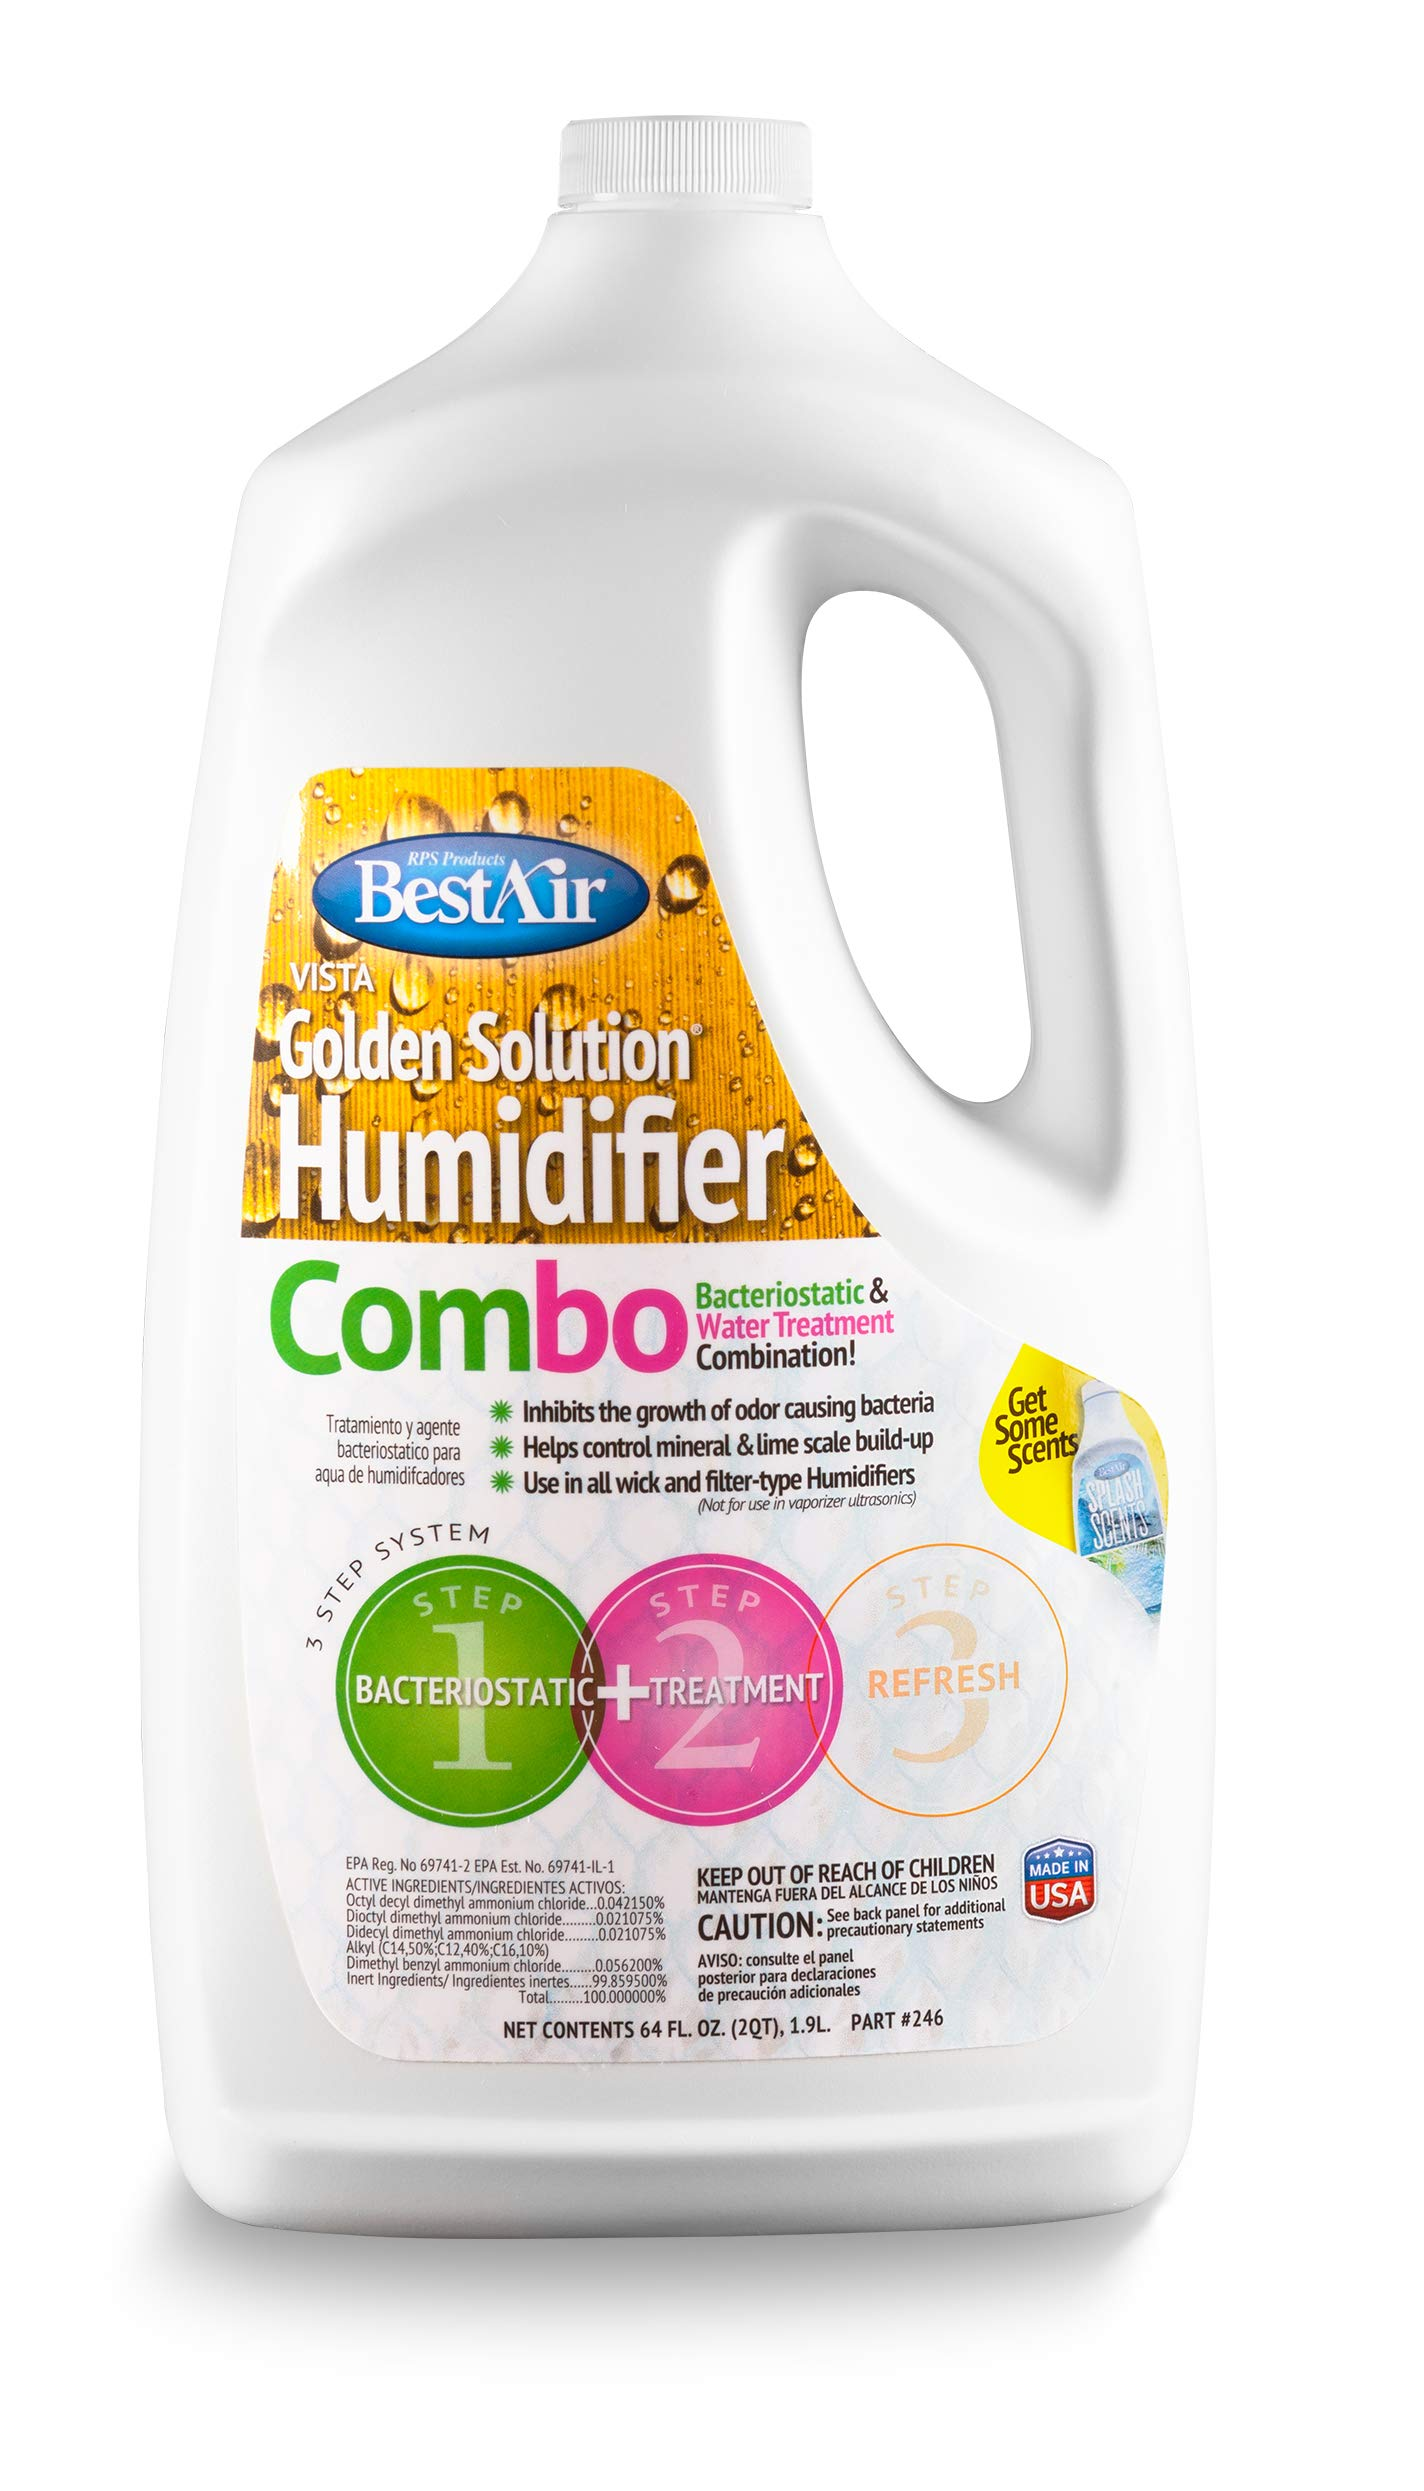 BestAir 246-PDQ-6 Golden Solutions Humidifier Bacteriostatic & Water Treatment Combo, 64 fl oz, 6 Pack by BestAir